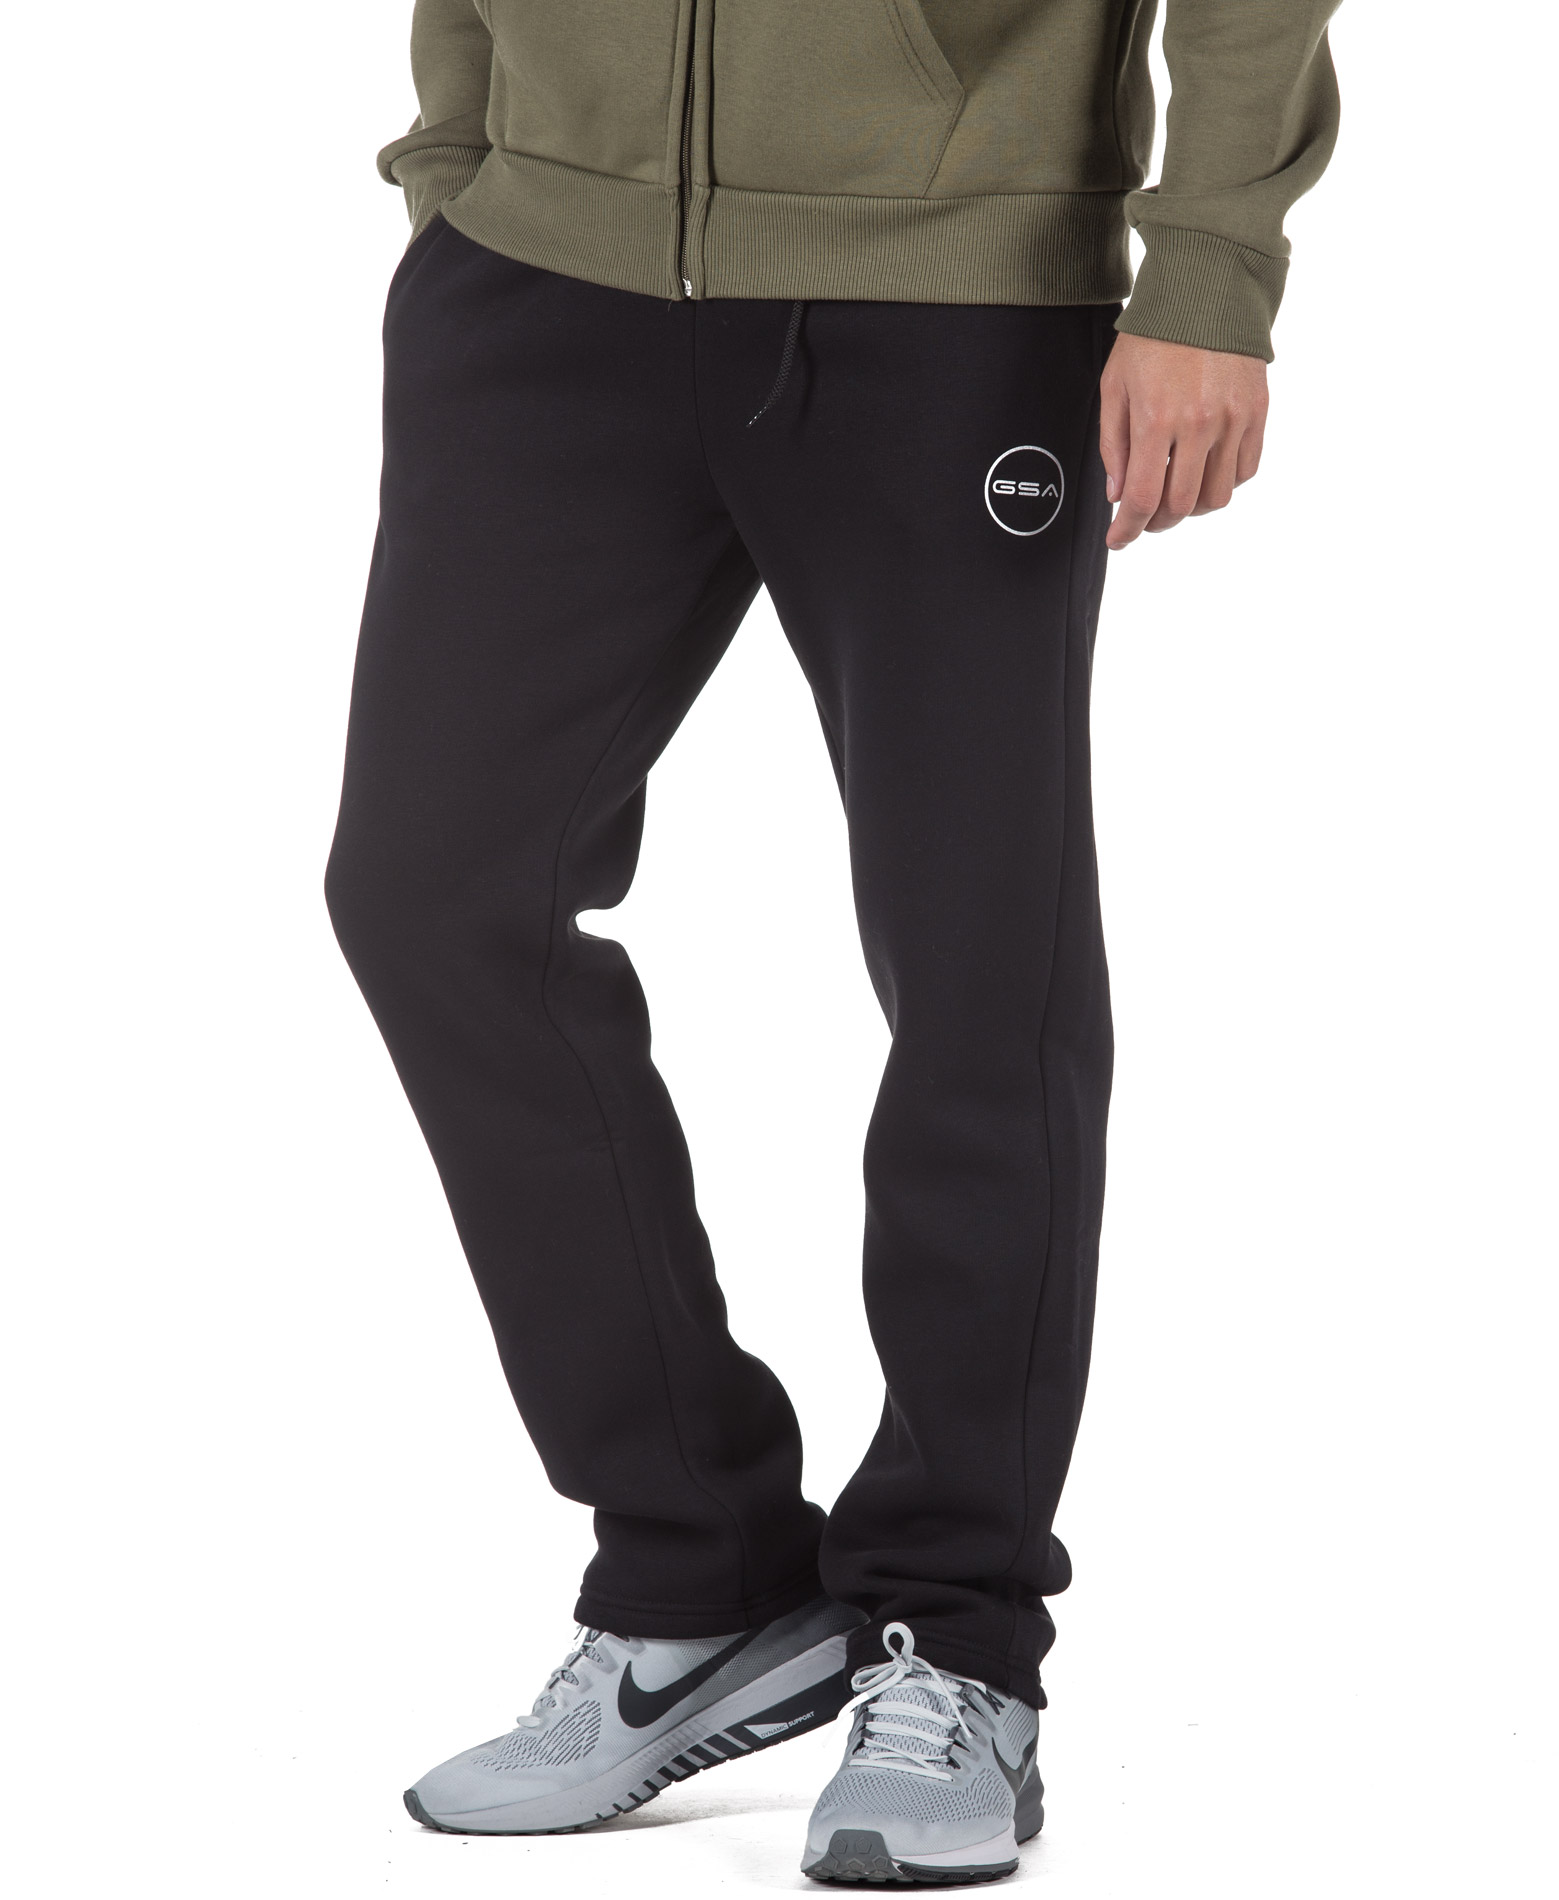 GSA SUPERCOTTON BOOTCUT SWEATPANTS 17-17028-01 JET BLACK Μαύρο